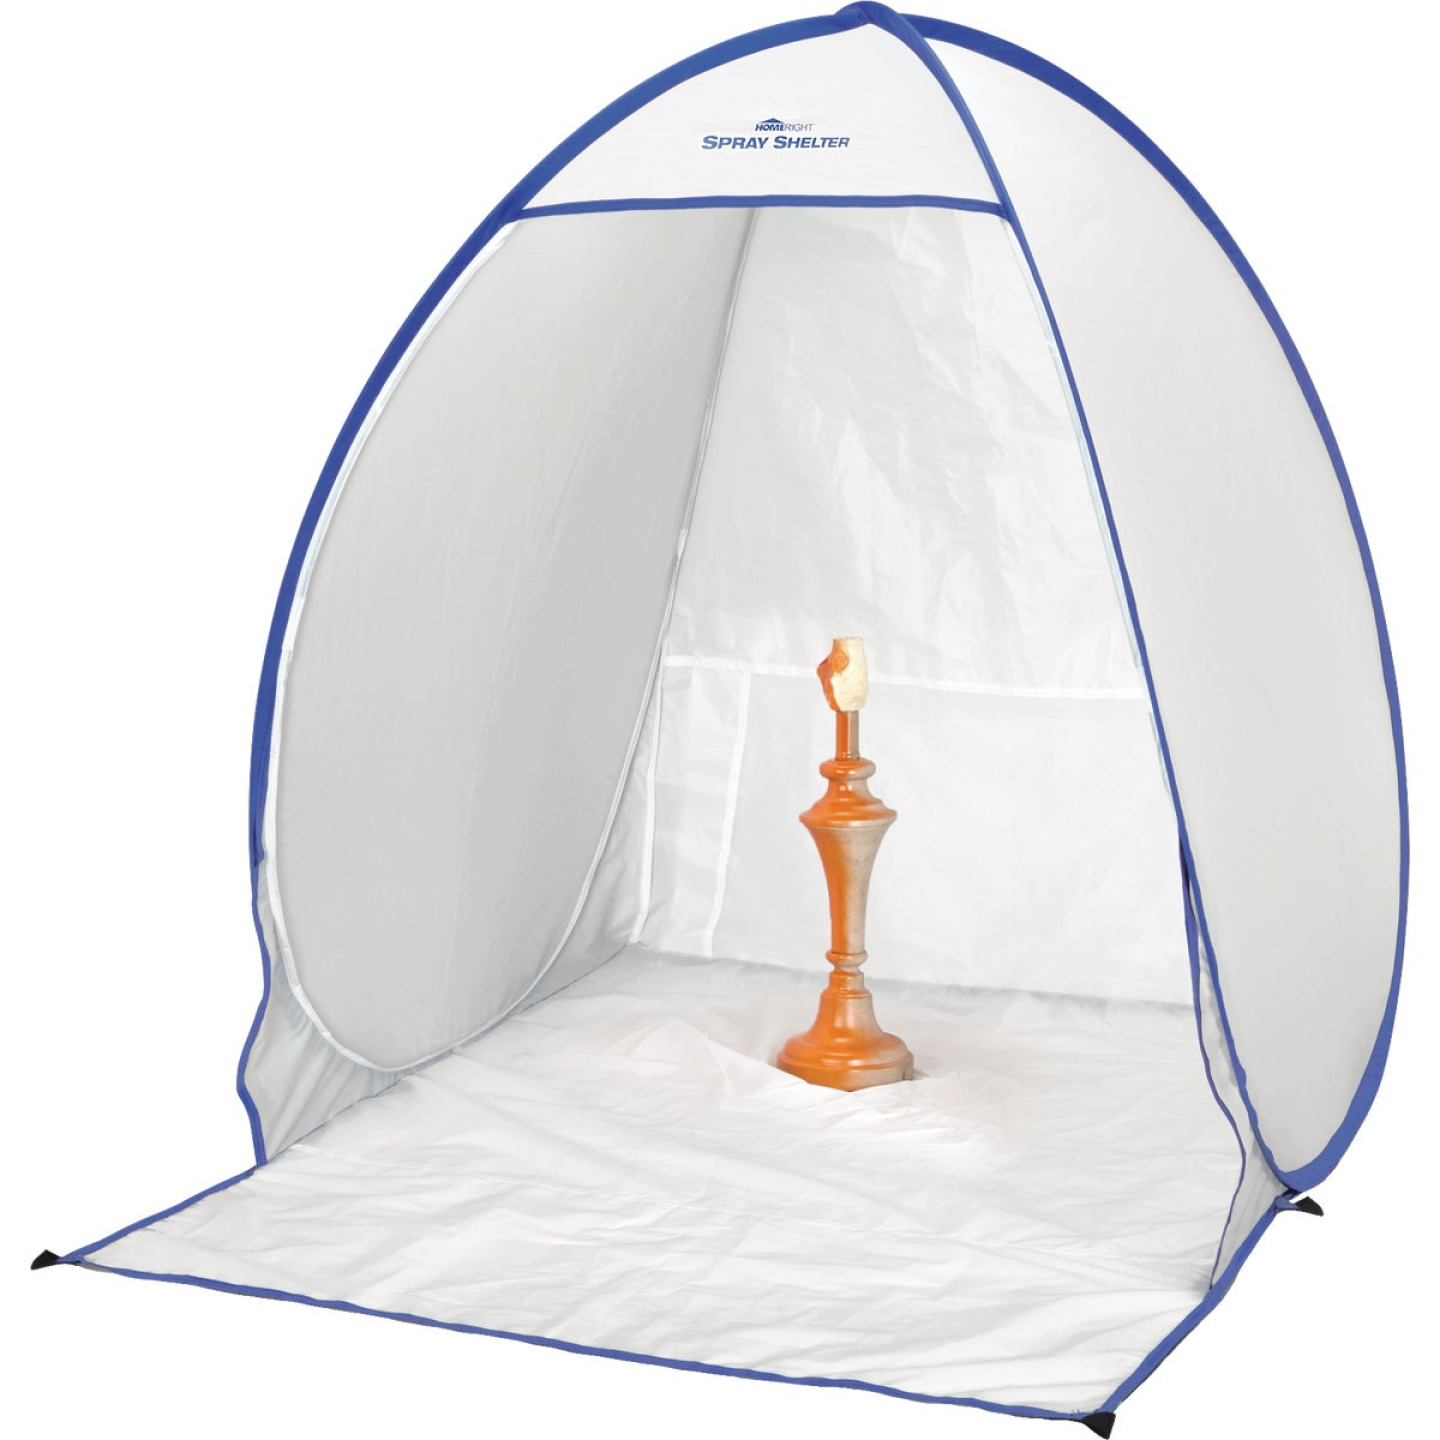 HomeRight 35 In. W. x 39 In. H. x 30 In. D. Small Portable Spray Shelter Image 2